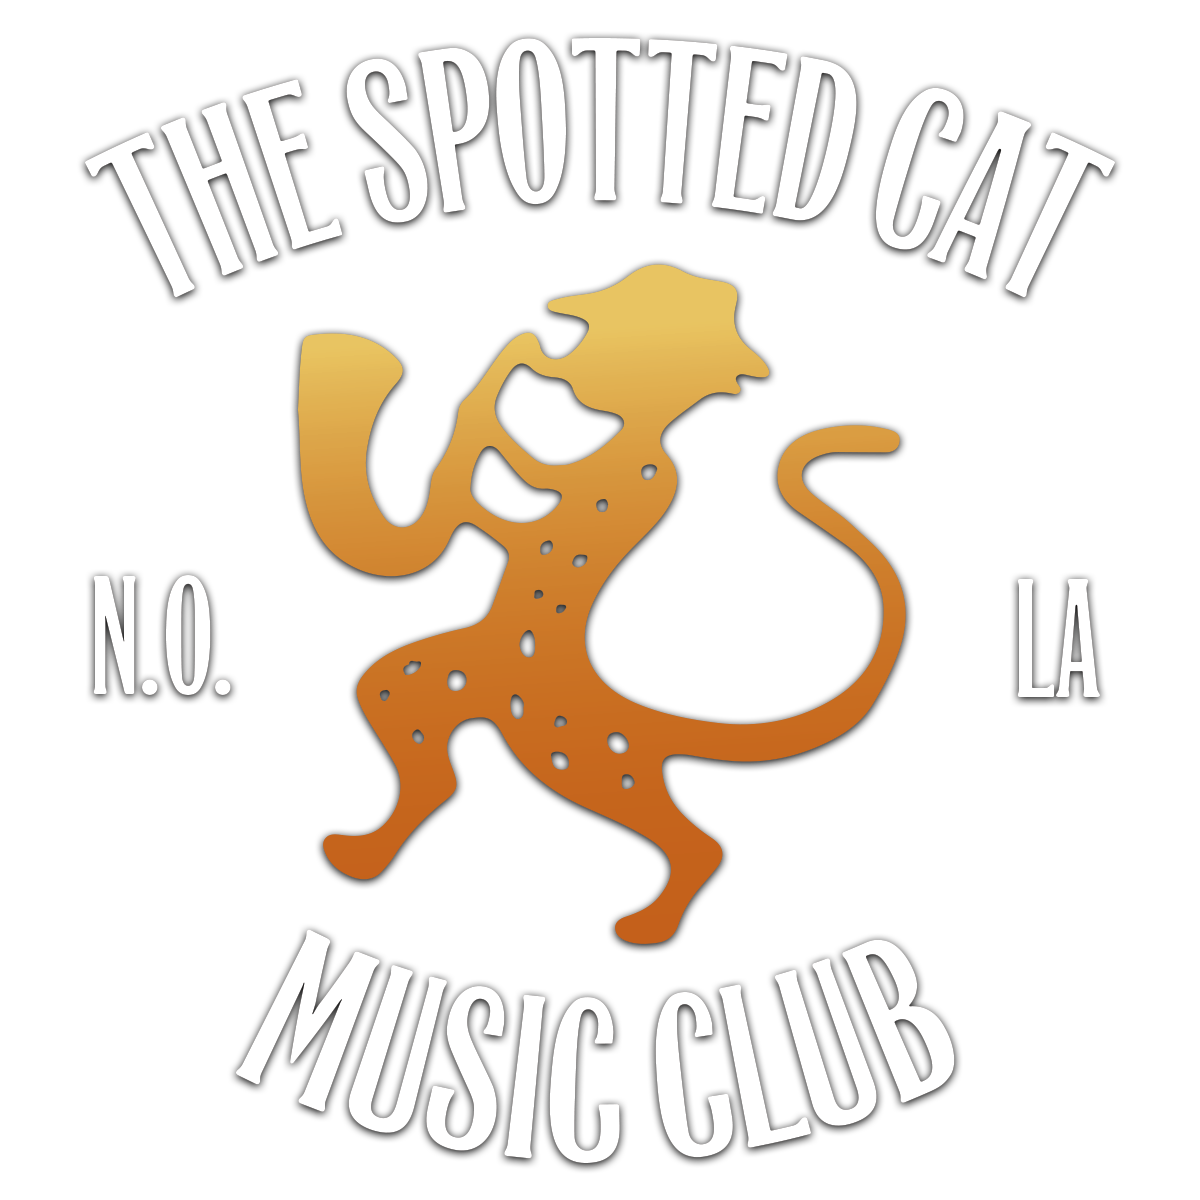 The spotted cat music. Jazz clipart live entertainment